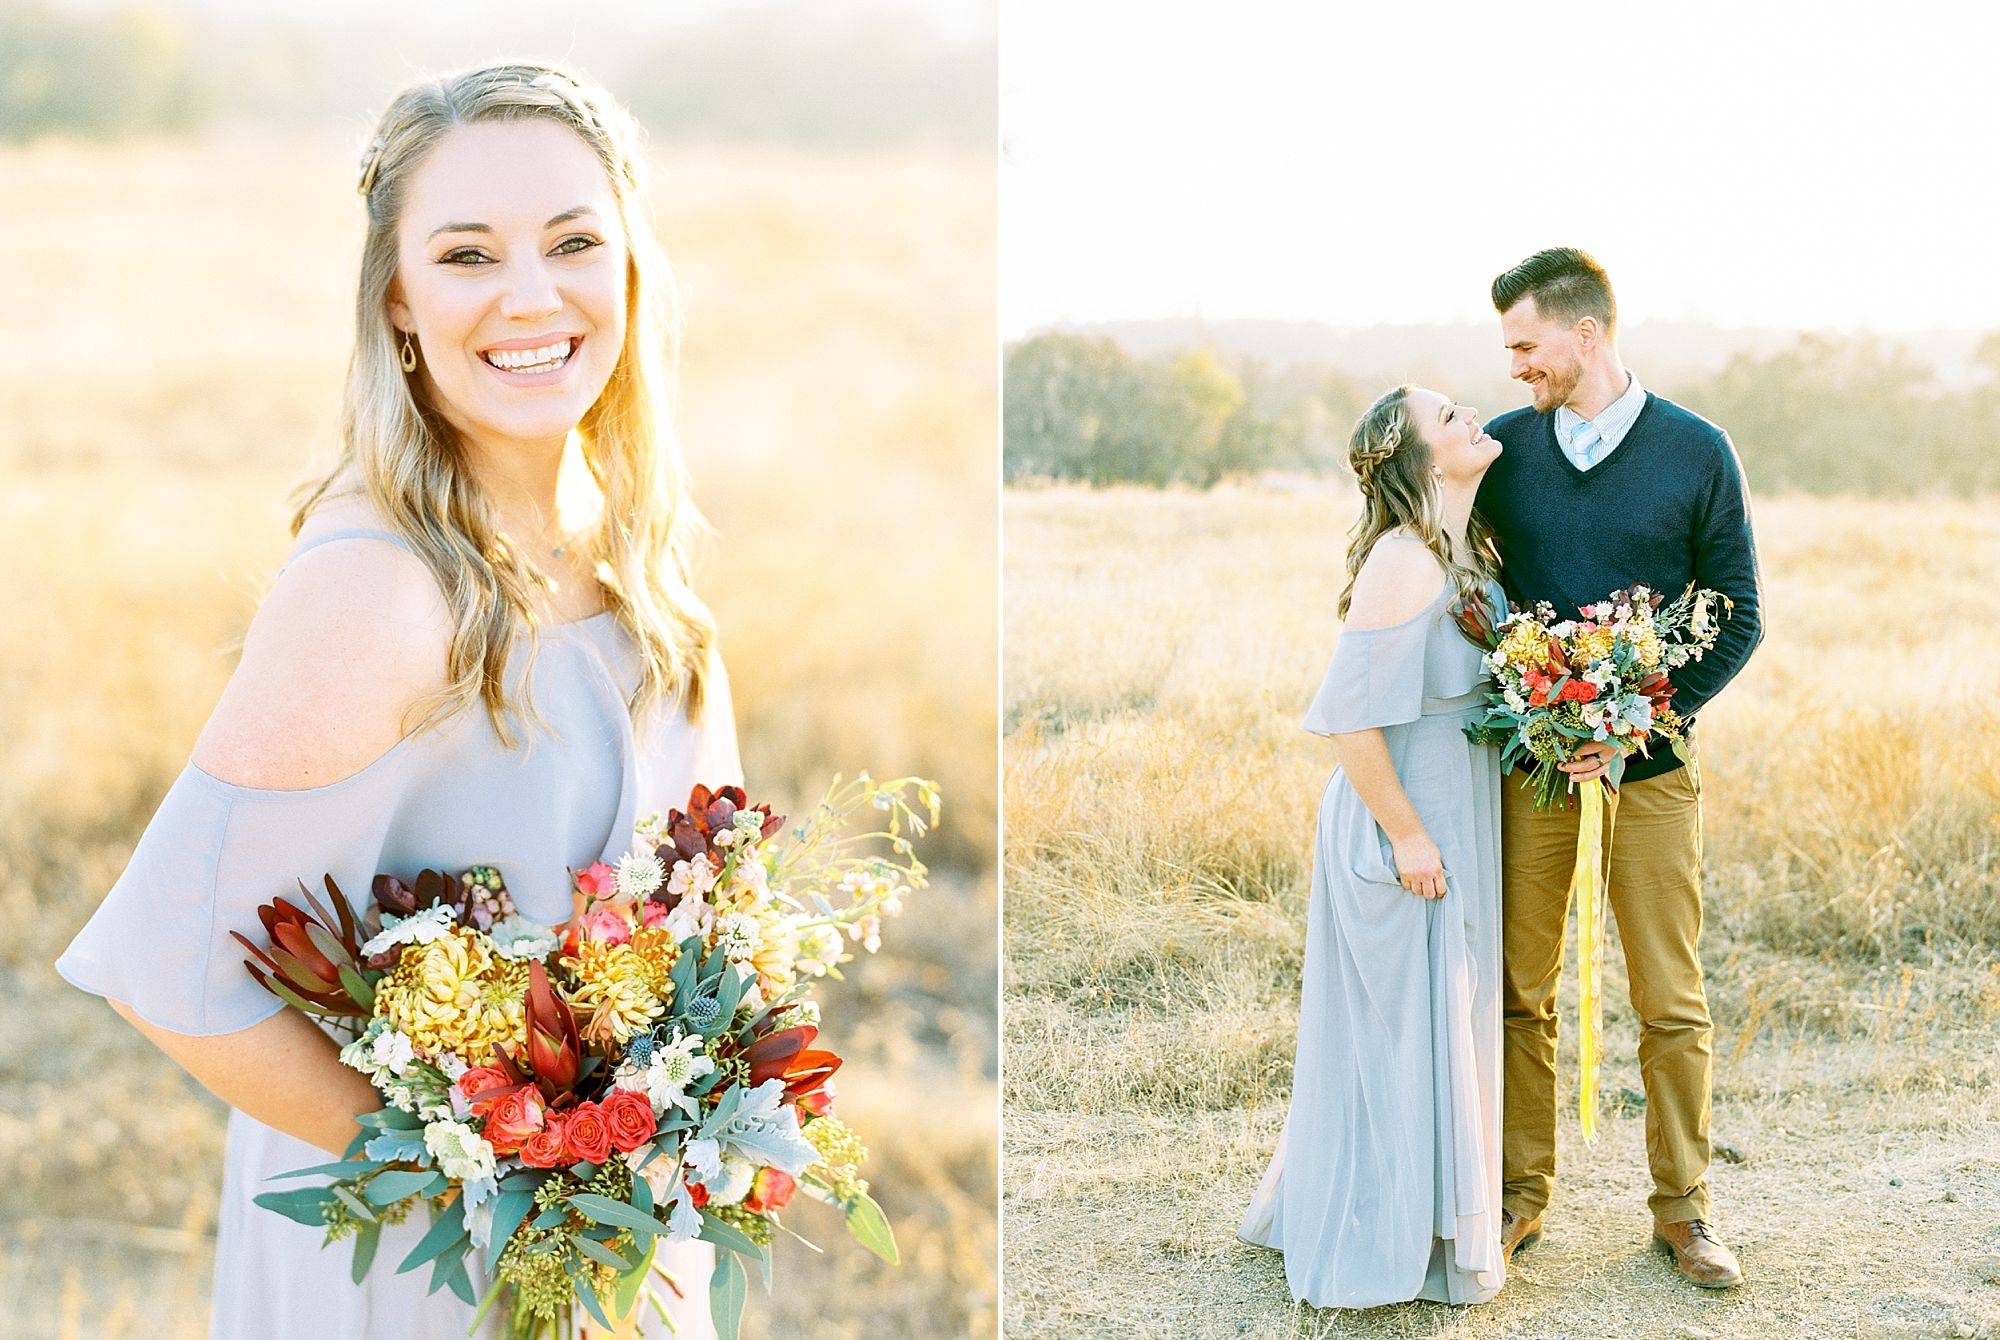 Ten Year Anniversary Portraits on Film - Ashley Baumgartner - Denise and Dan - Sacramento Wedding Photographer - Paso Robles Wedding Photography_0011.jpg